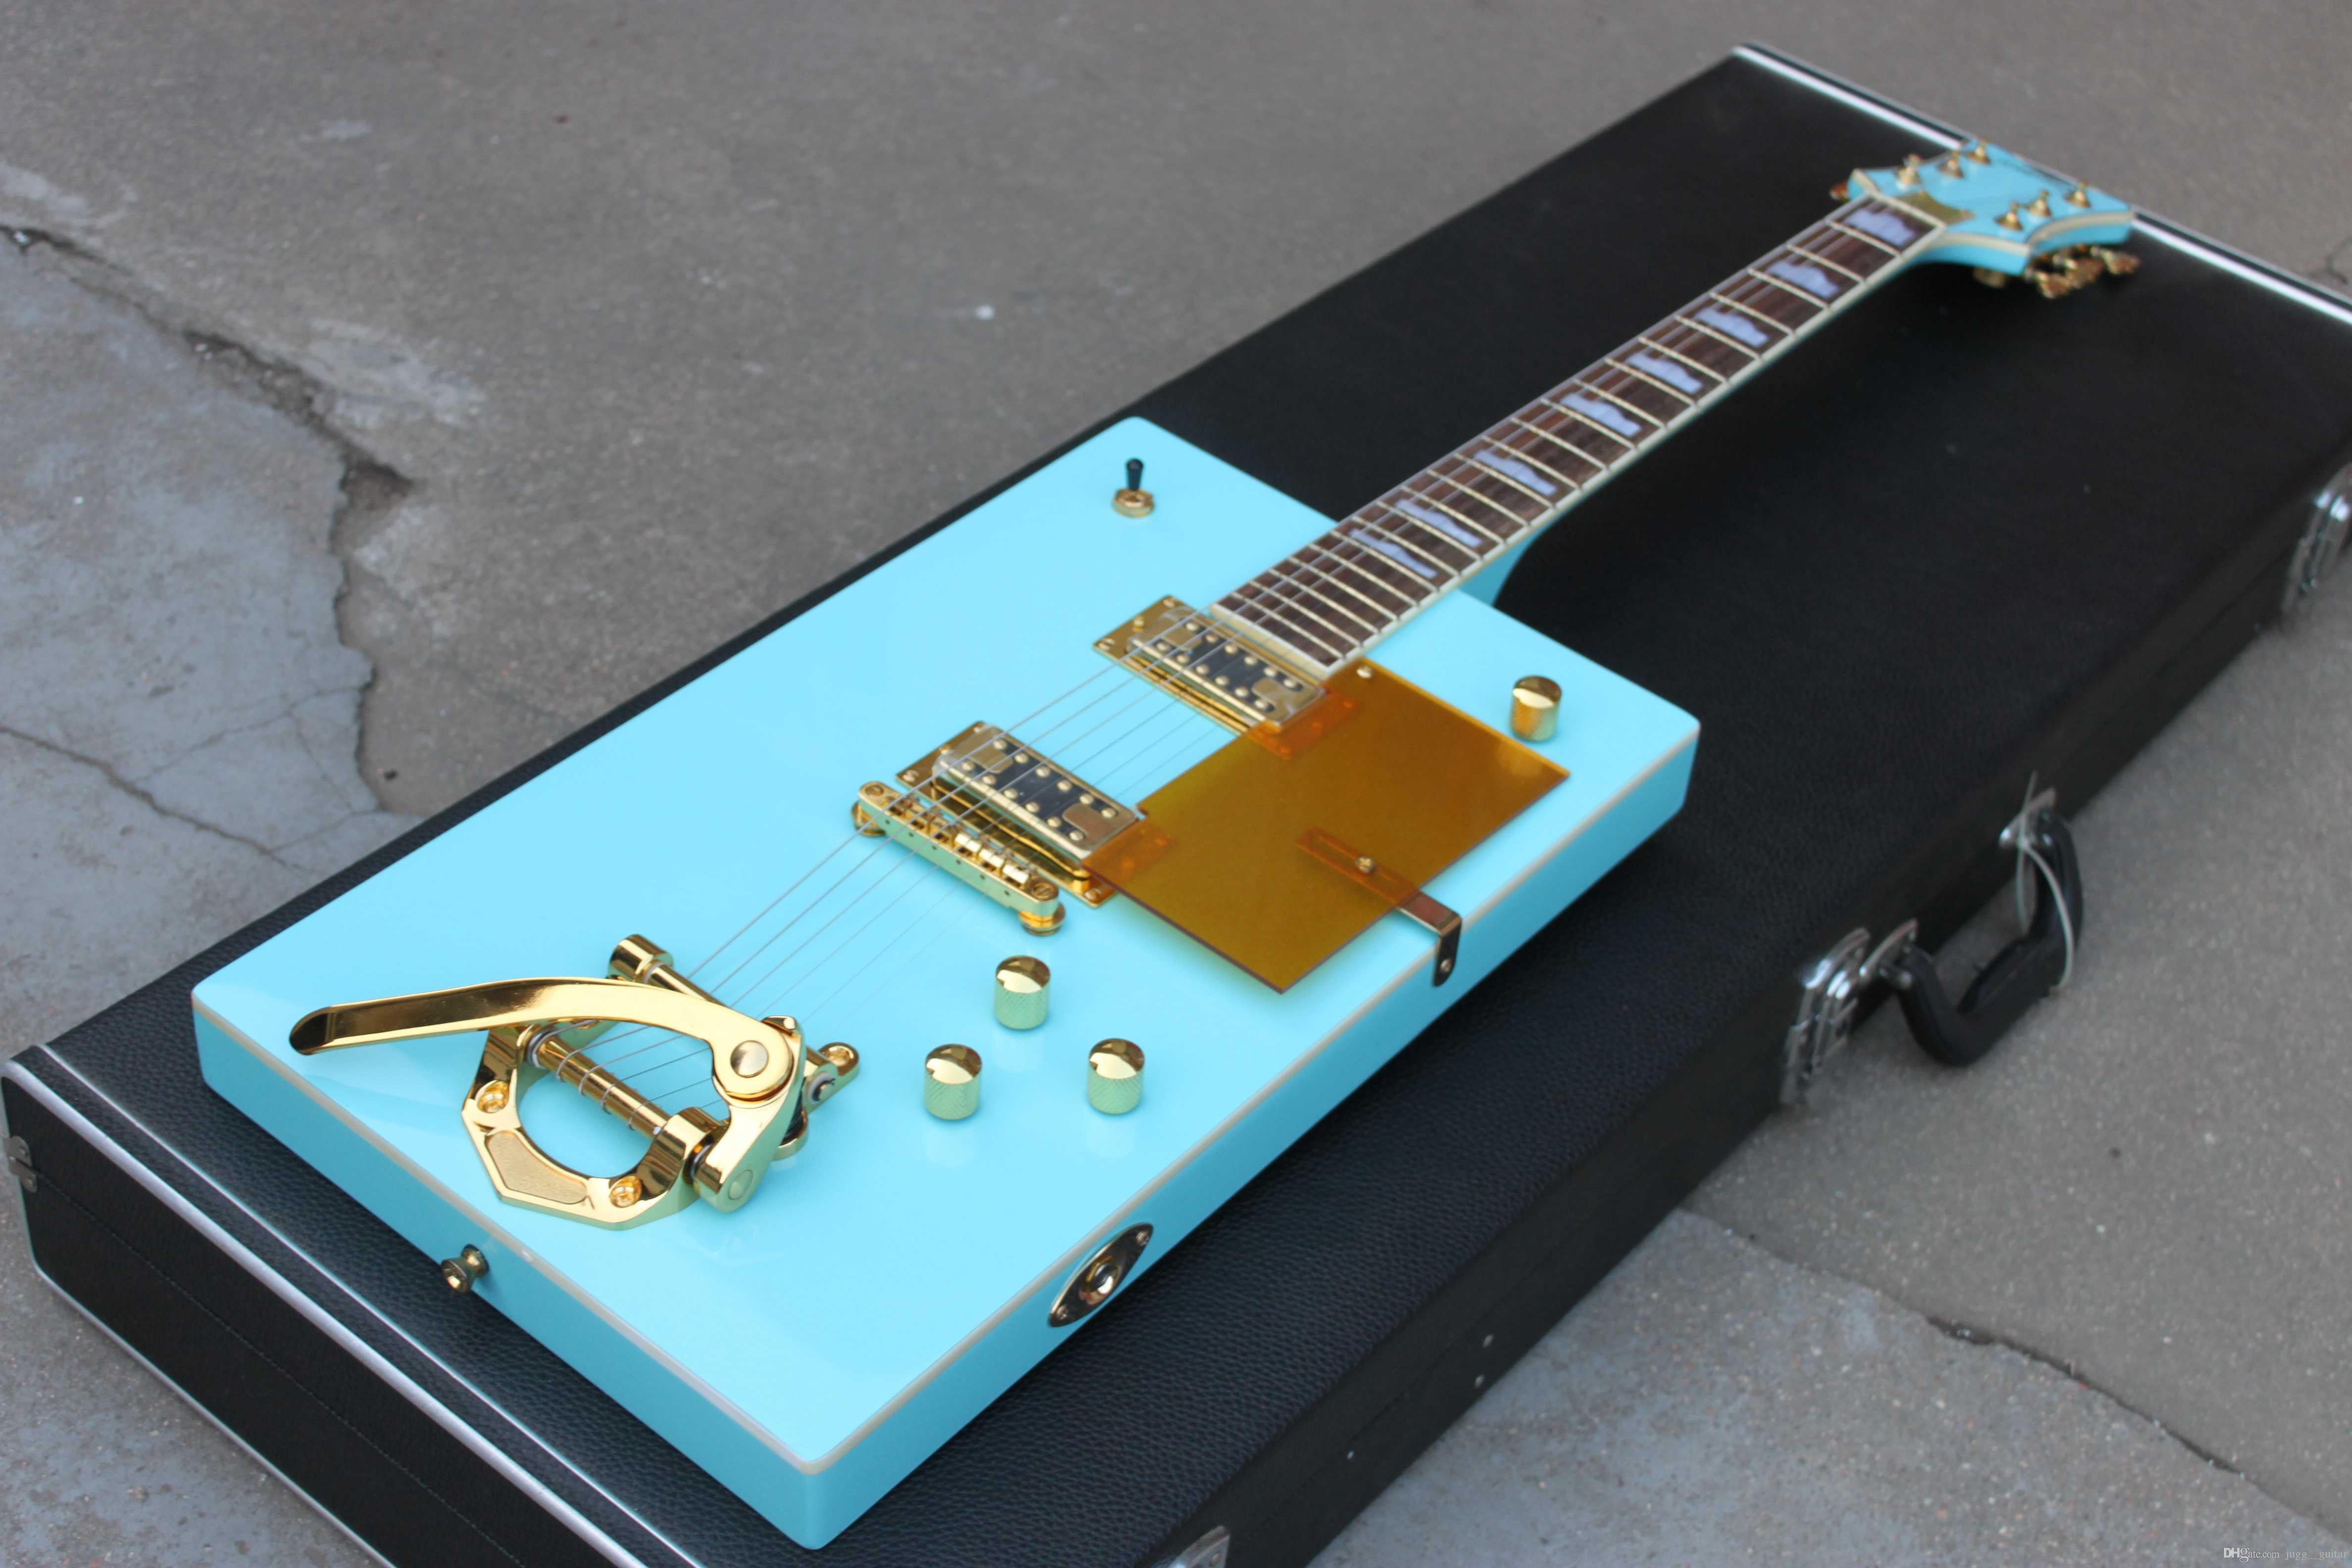 Vintage Rare G5810 Bo Diddley Light Green Suqare Electric Guitar Sparkle  Gold Body Binding Bigs Tremolo Talipiece Gold Pickguard